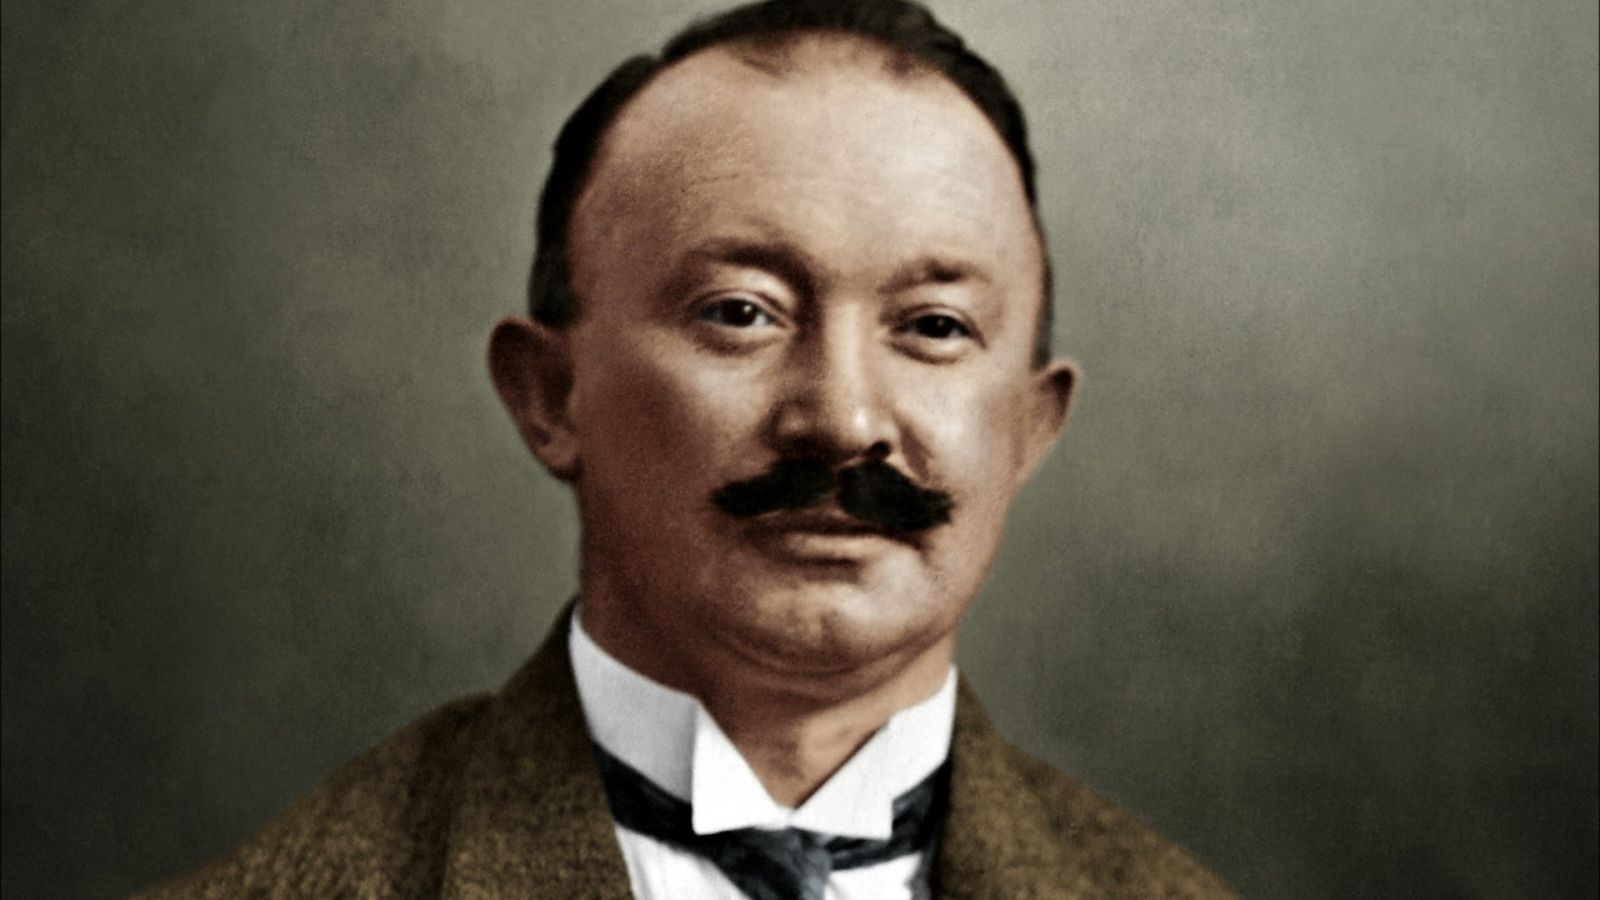 Gallery images and information: Hugo Ferdinand Boss